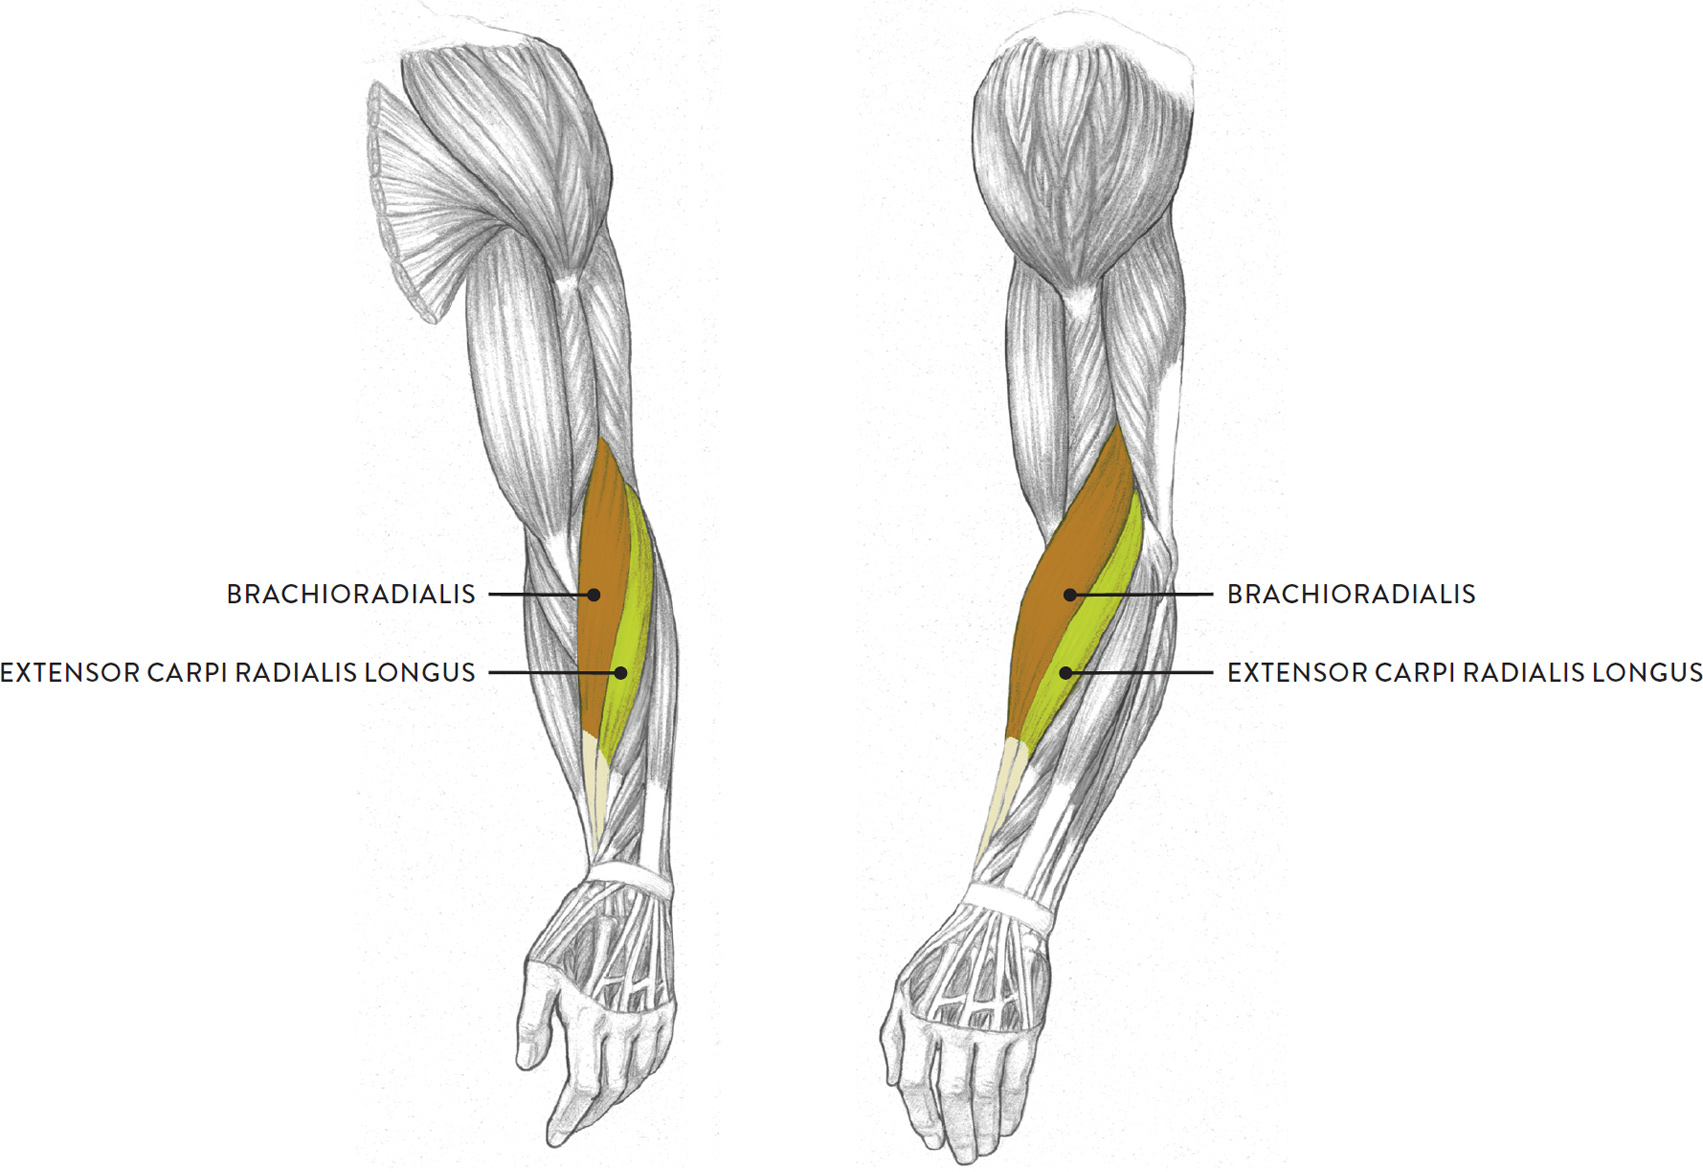 Muscles Of The Arm And Hand Classic Human Anatomy In